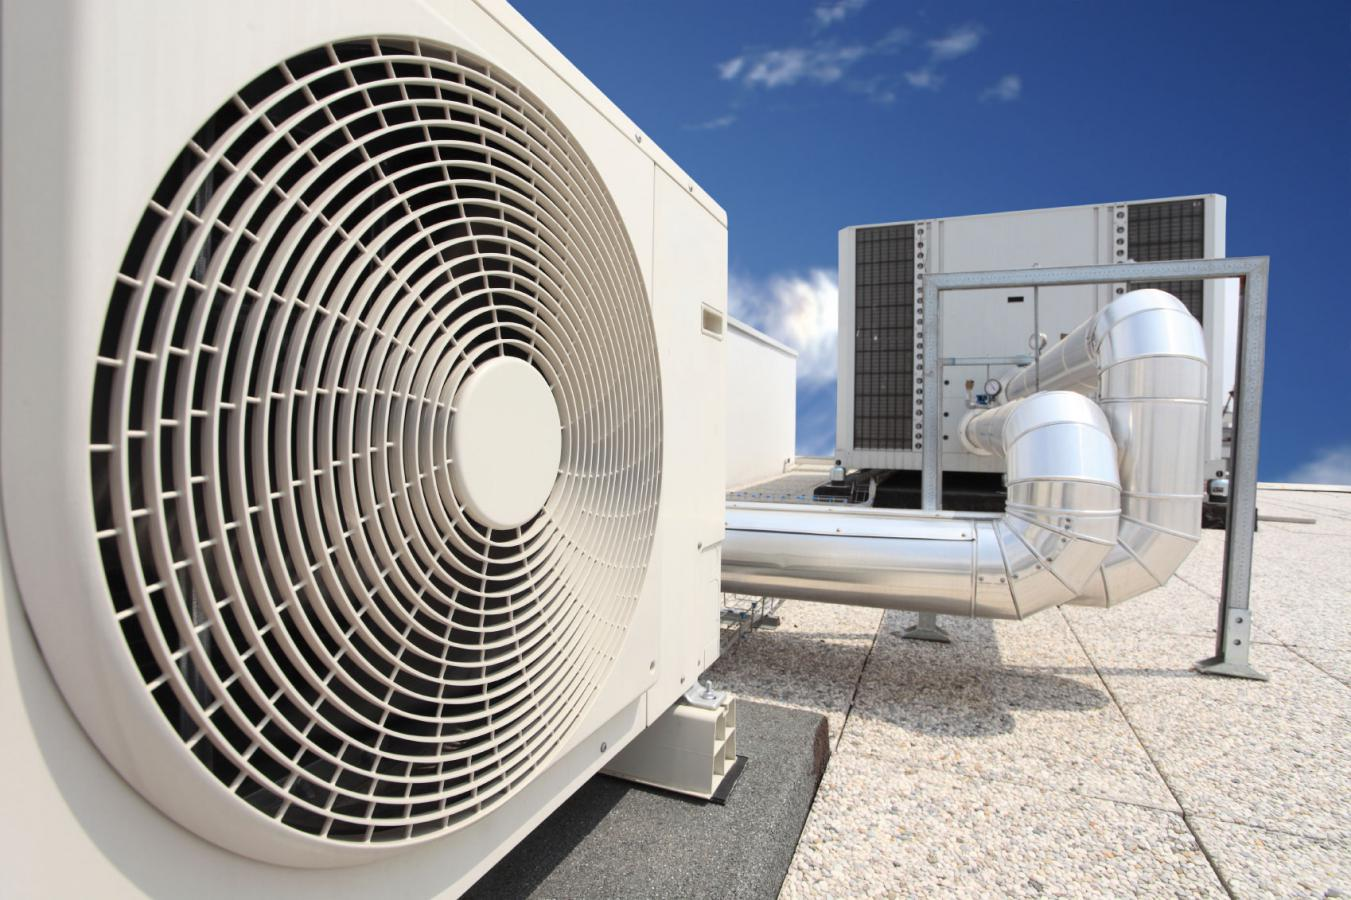 5 New Air Conditioning Technologies to Keep You Cool | Department of Energy